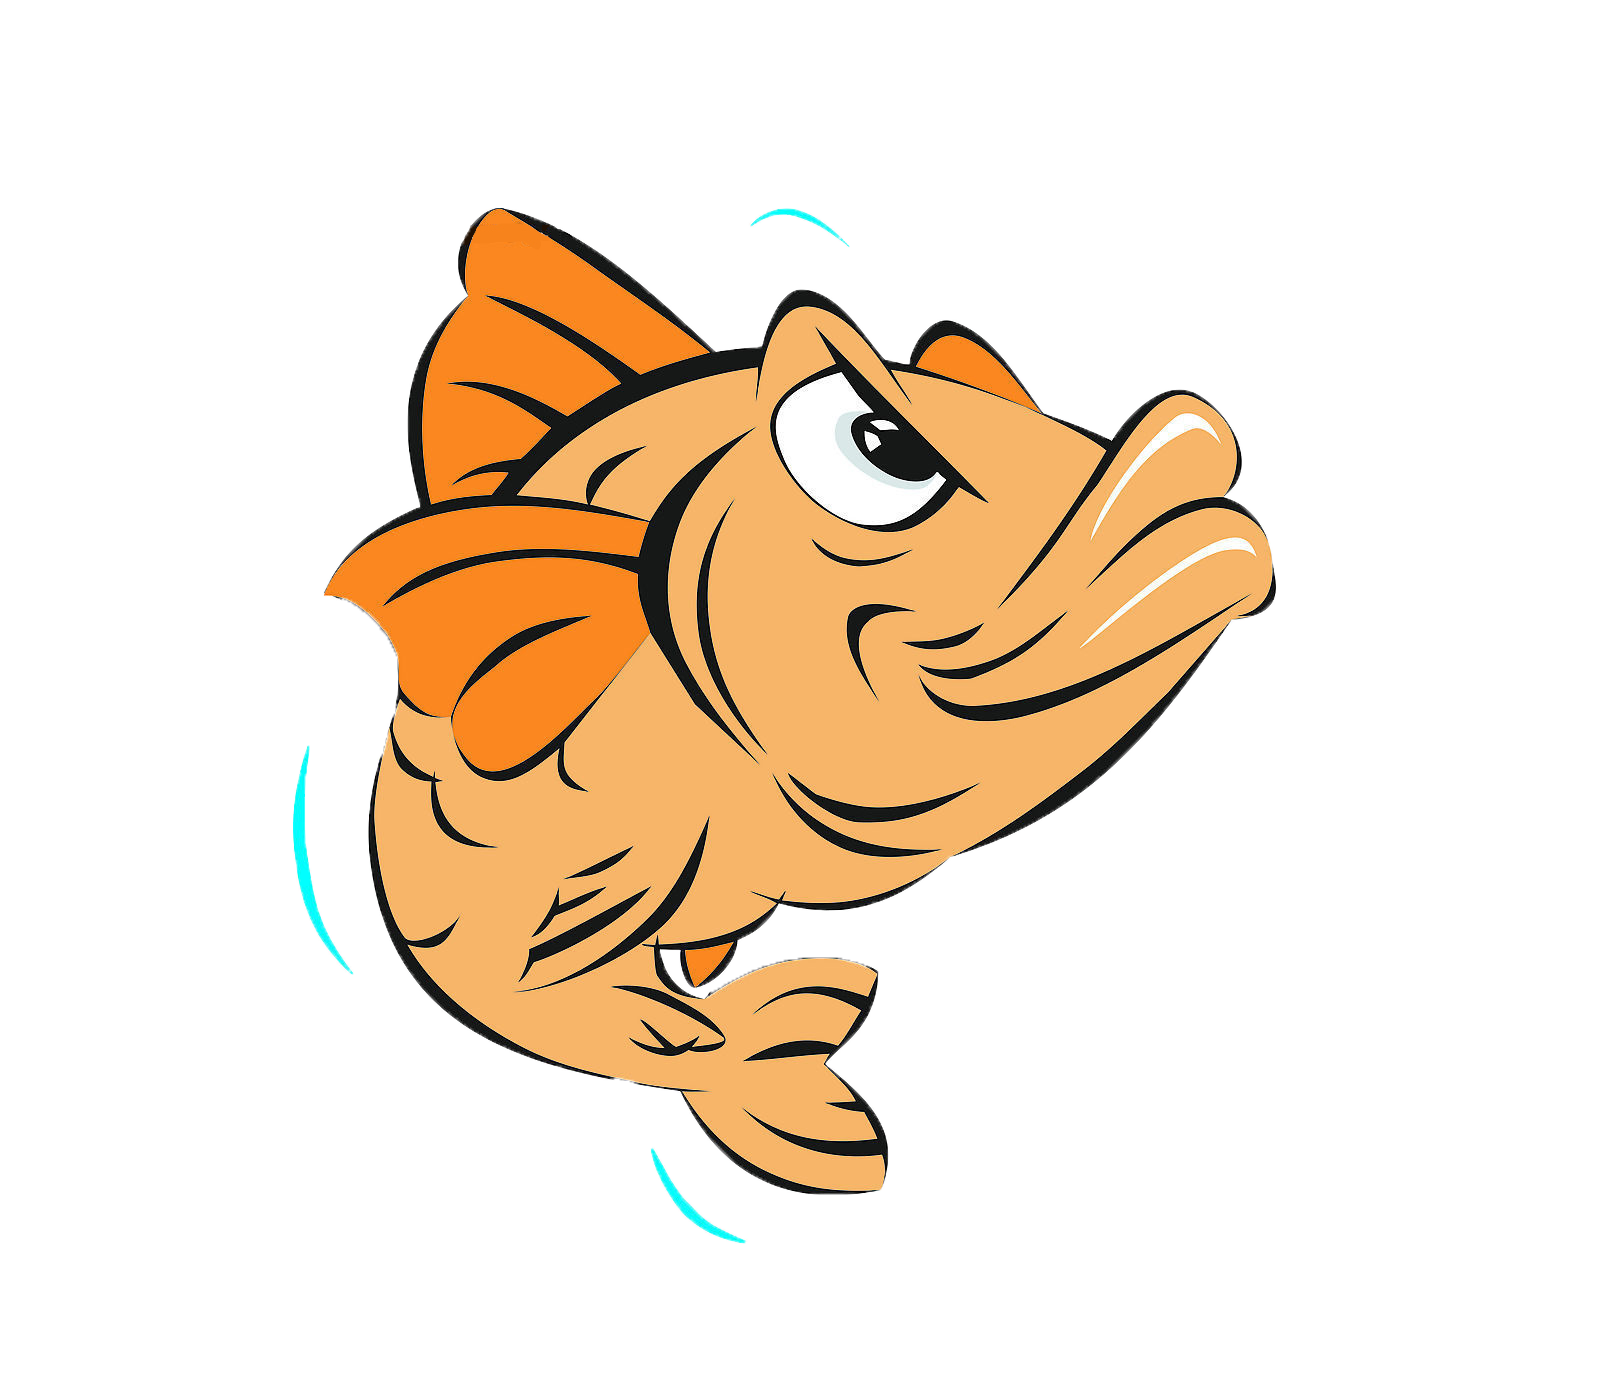 Free fish cartoon clipart picture black and white library Cartoon Fish Clip art - fish,Cartoon fish,Jumping Fish,Angry Fish ... picture black and white library